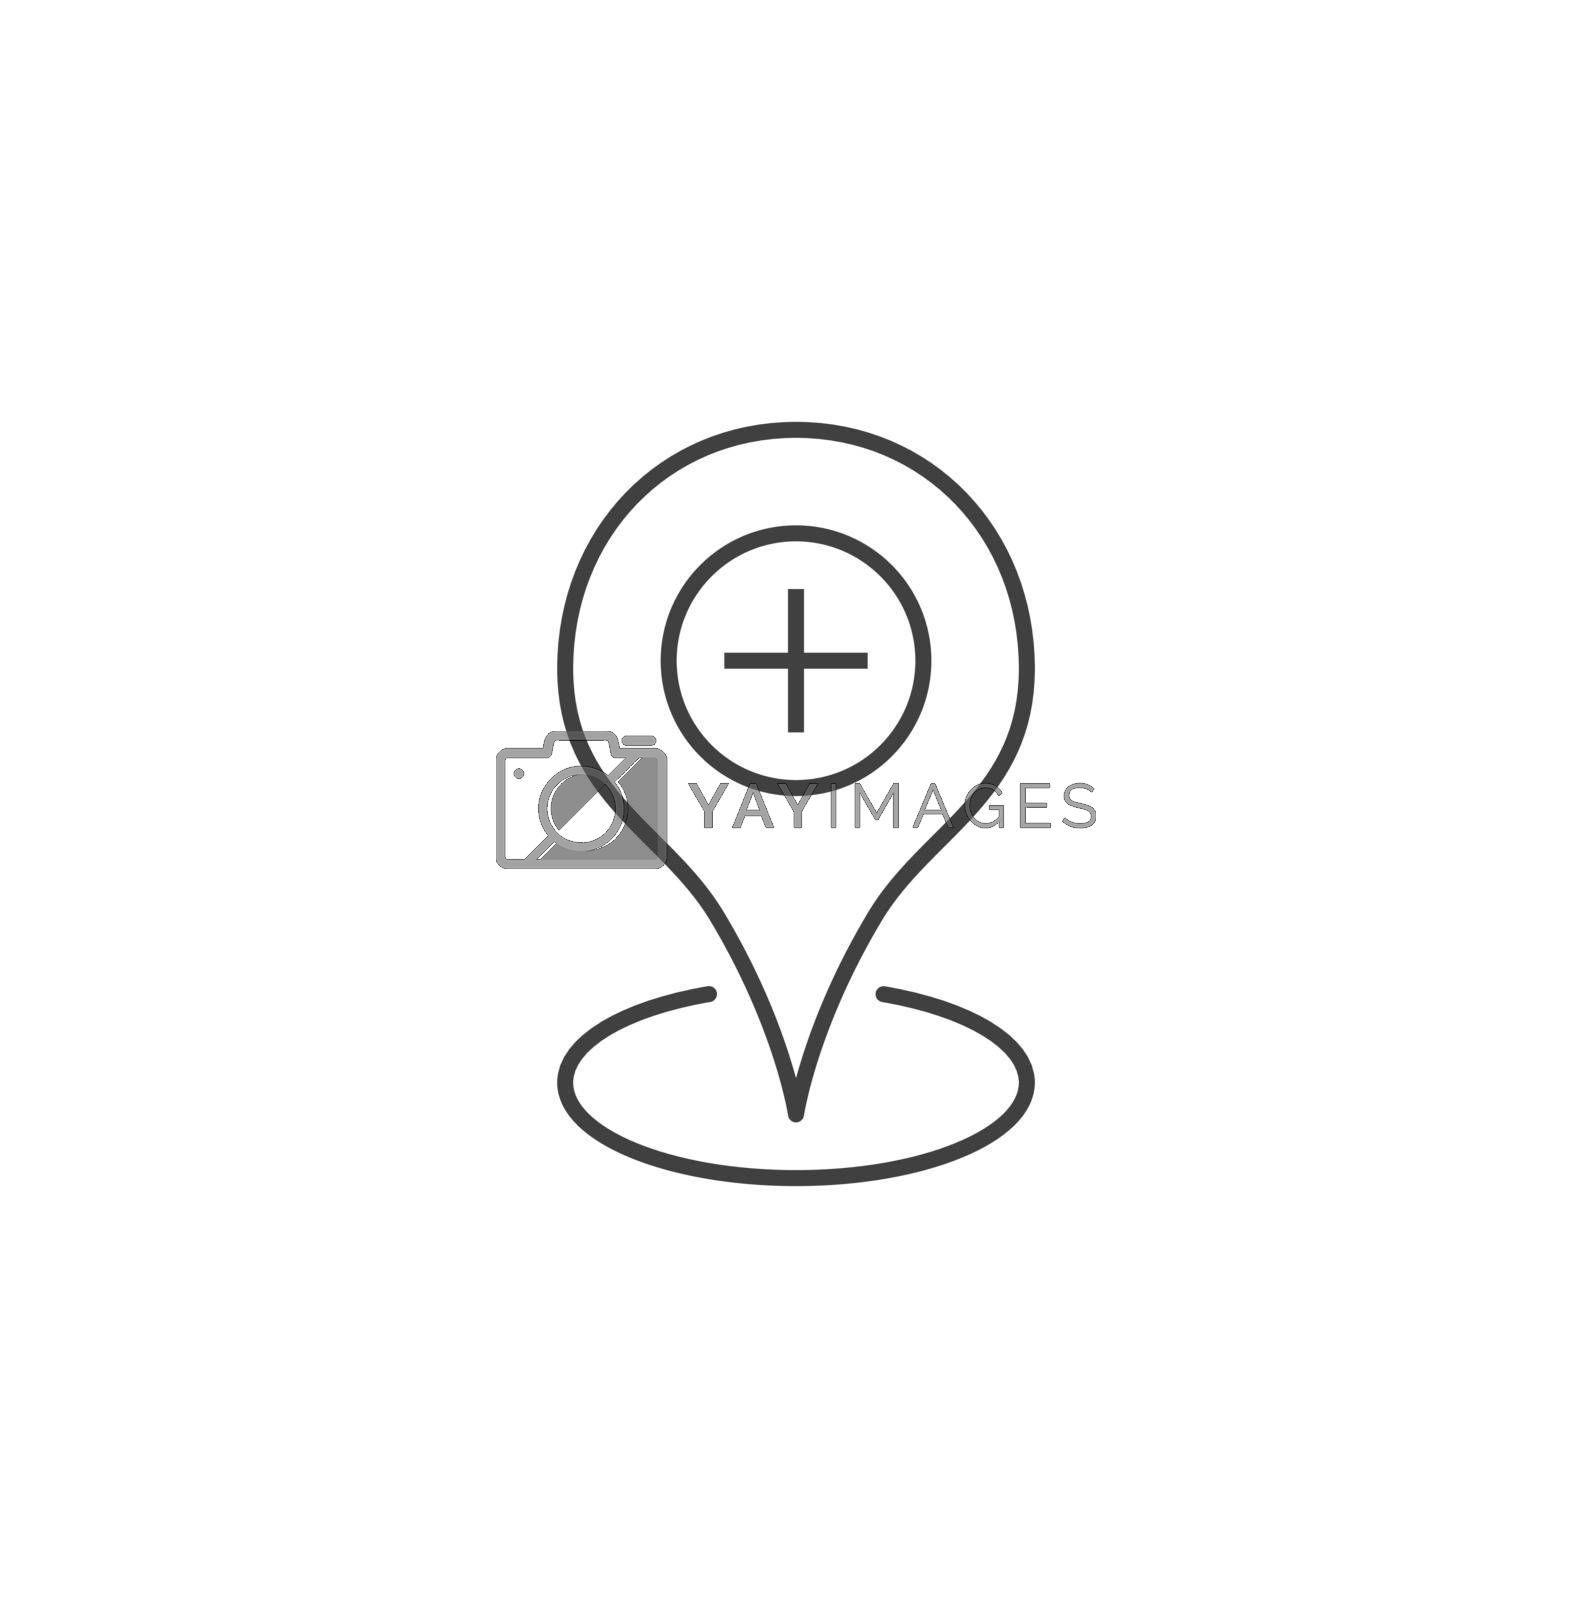 Hospital location Thin Line Vector Icon. Flat Icon Isolated on the Black Background. Editable Stroke EPS file. Vector illustration.